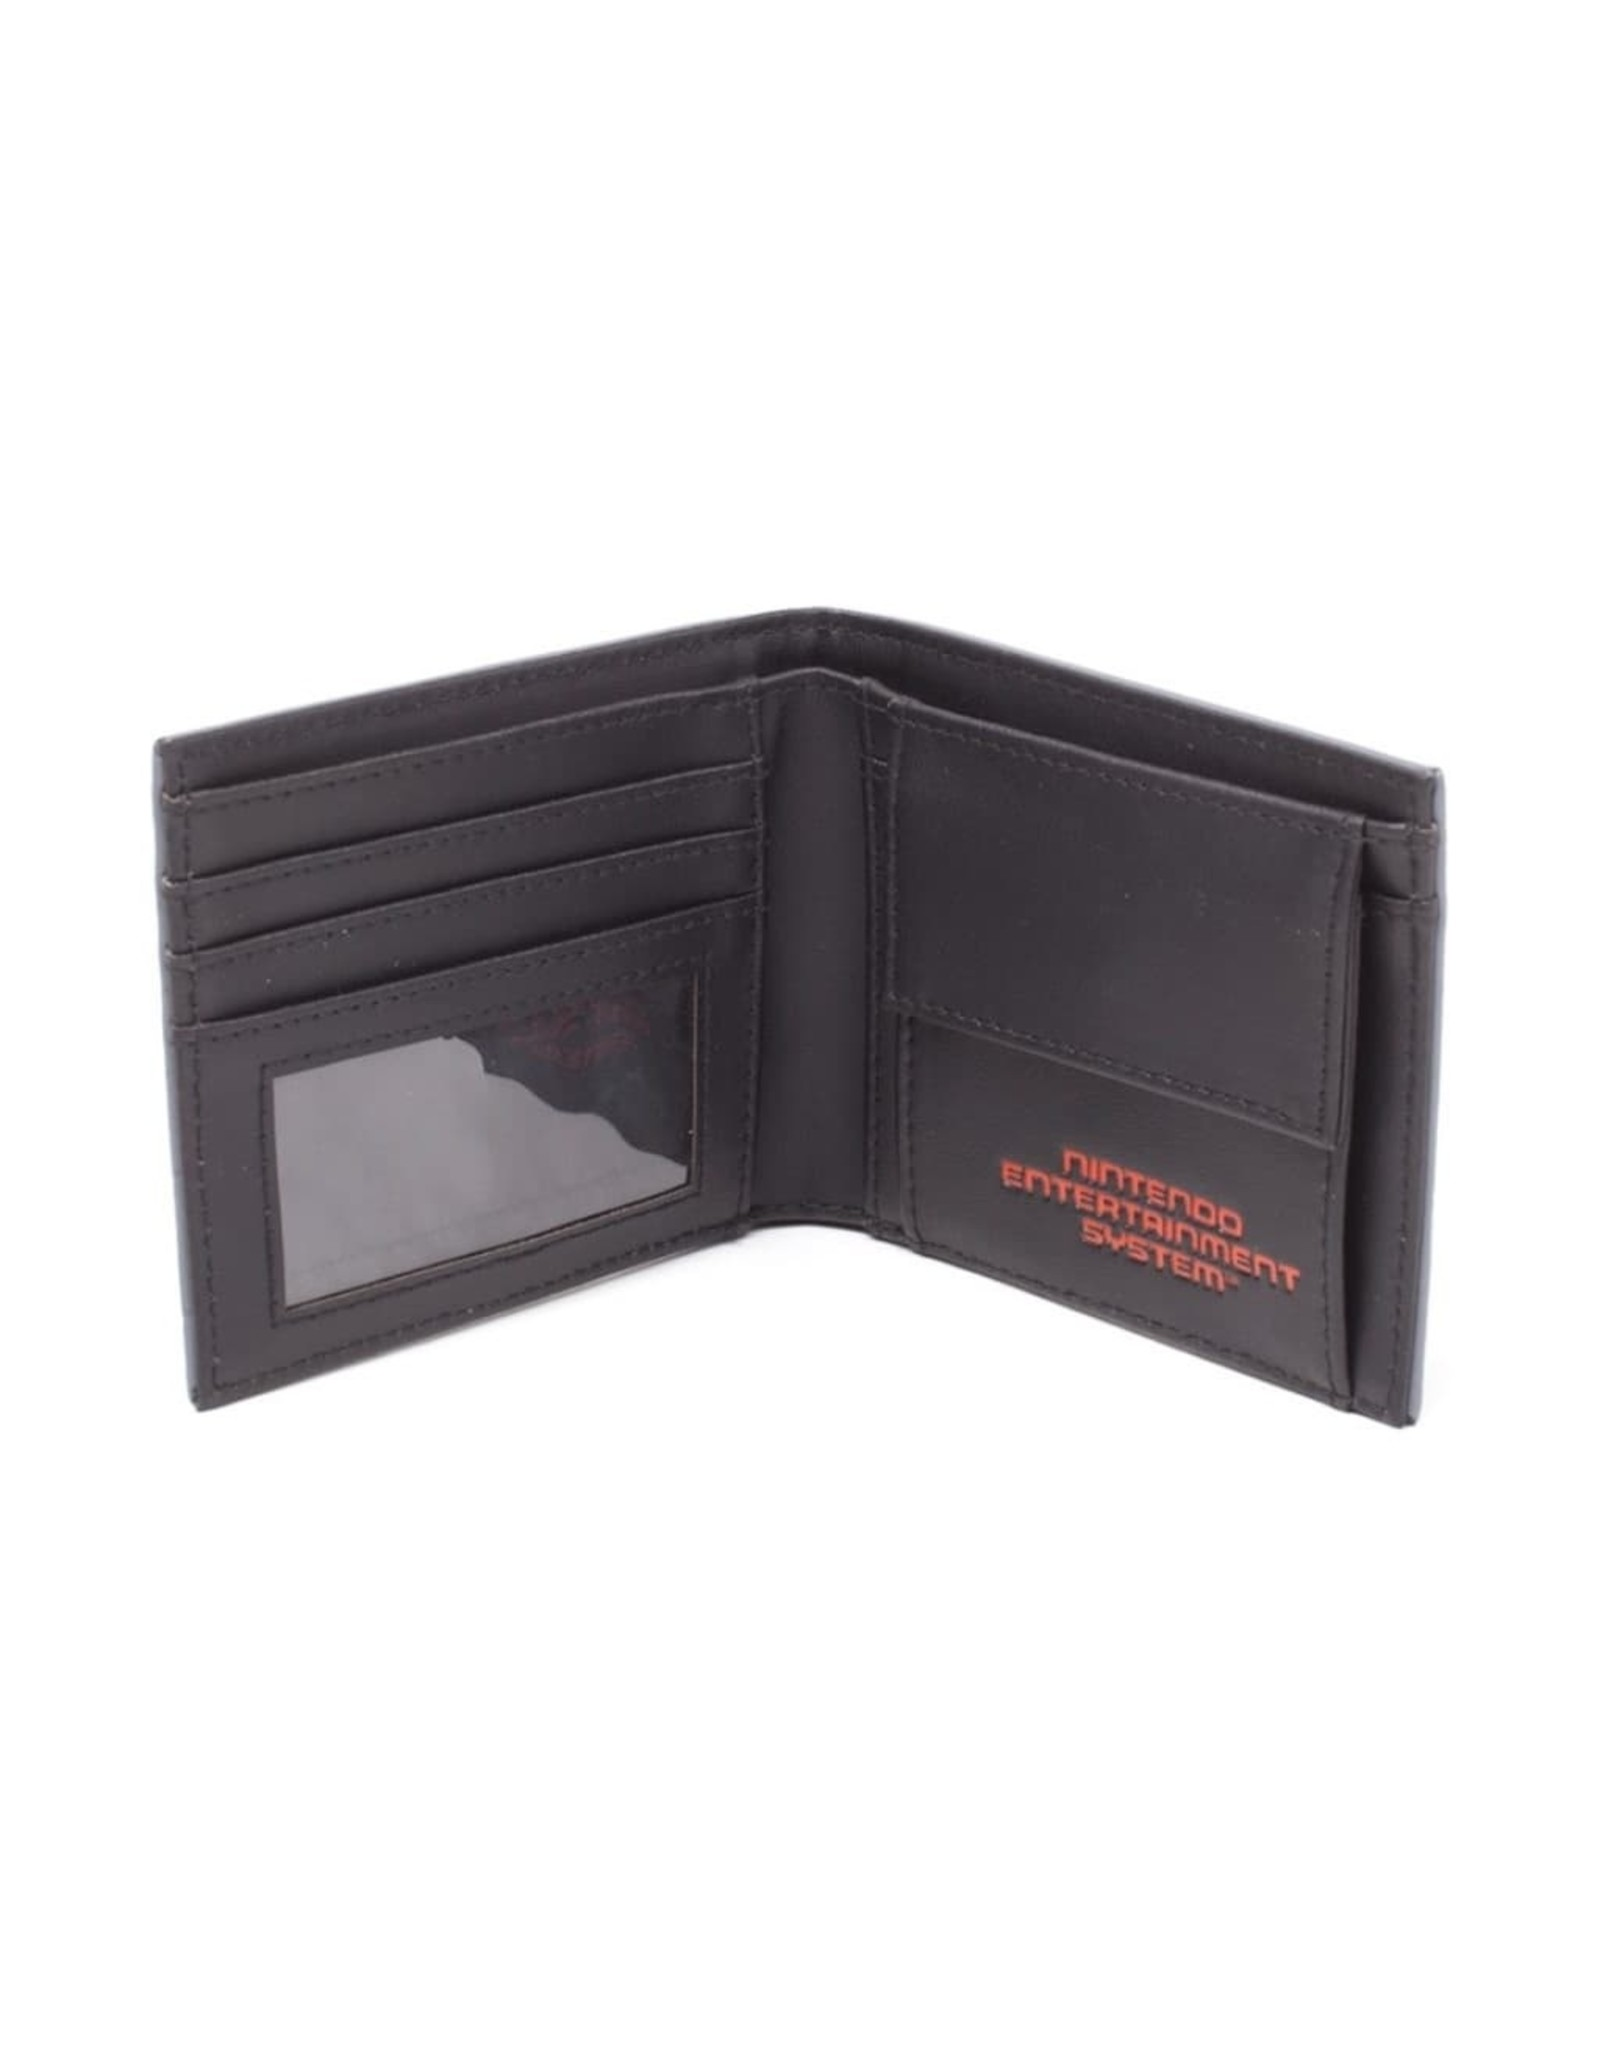 Nintendo Merchandise wallet - Nintendo Cartridge wallet